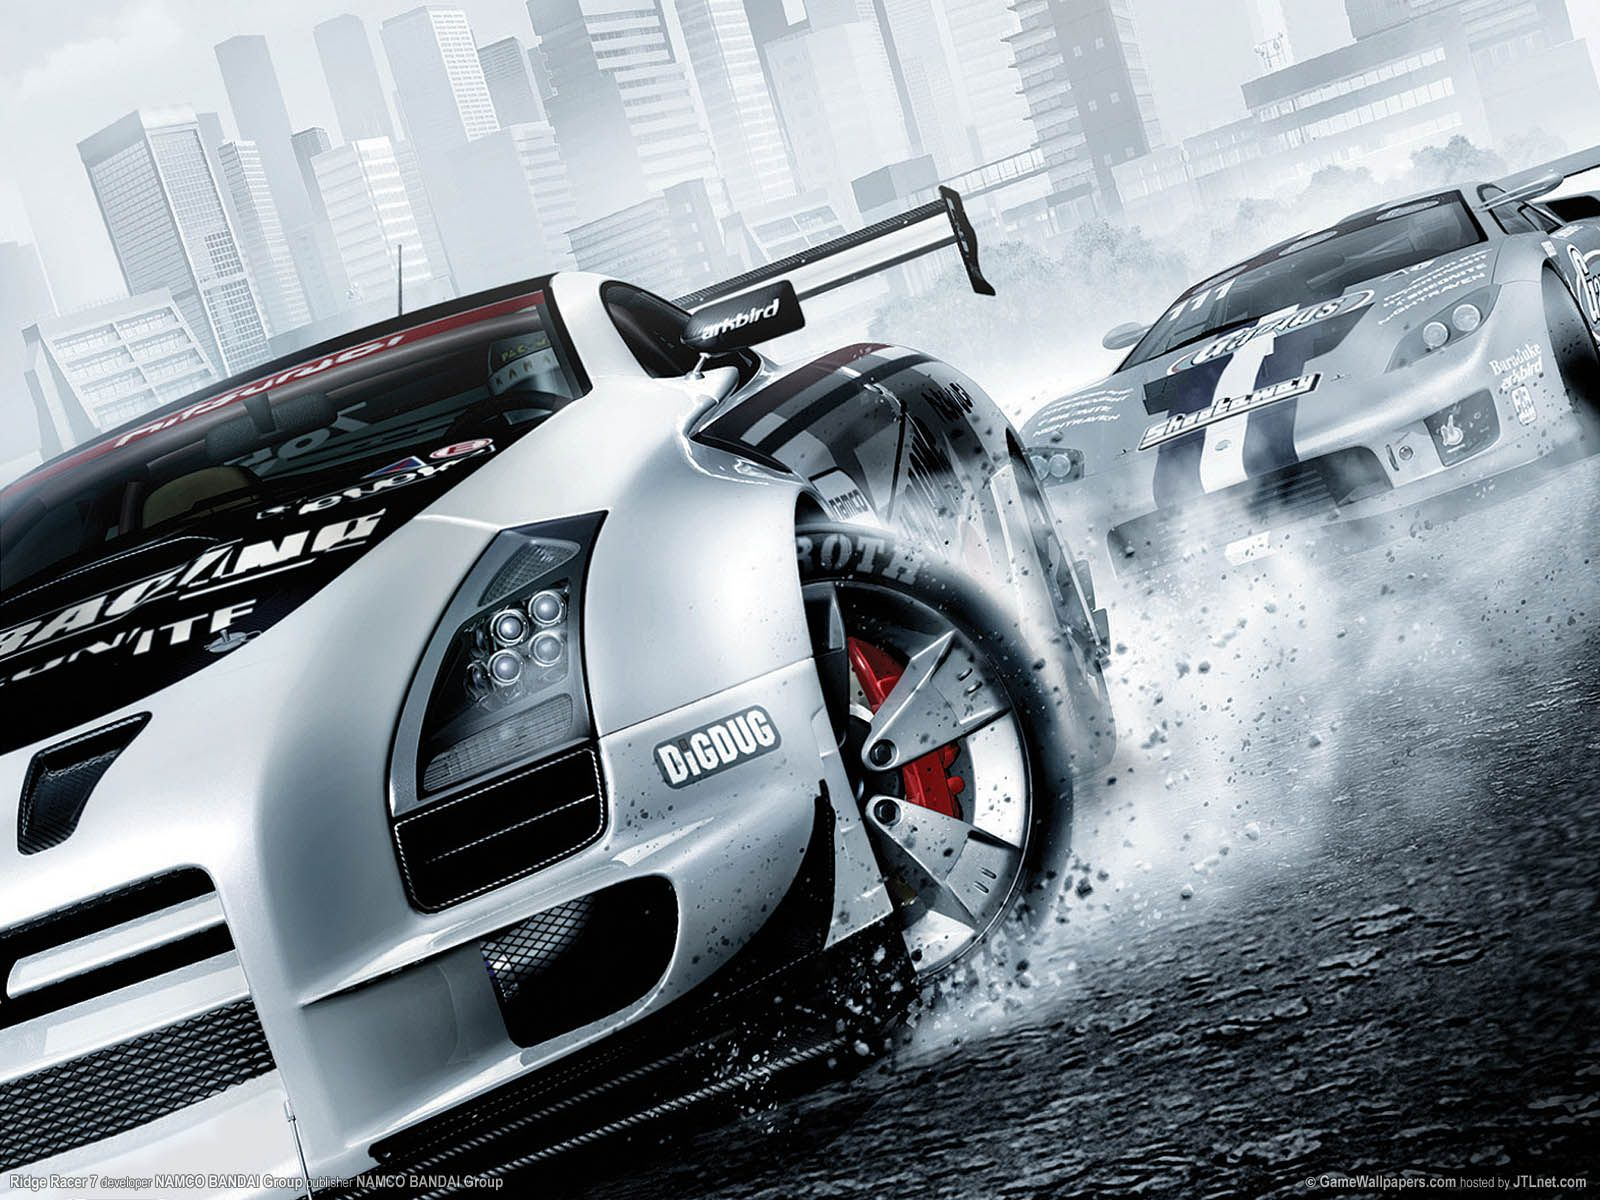 Free PS Themes And Wallpapers Wallpaper 1920x1080 PS3 Backgrounds